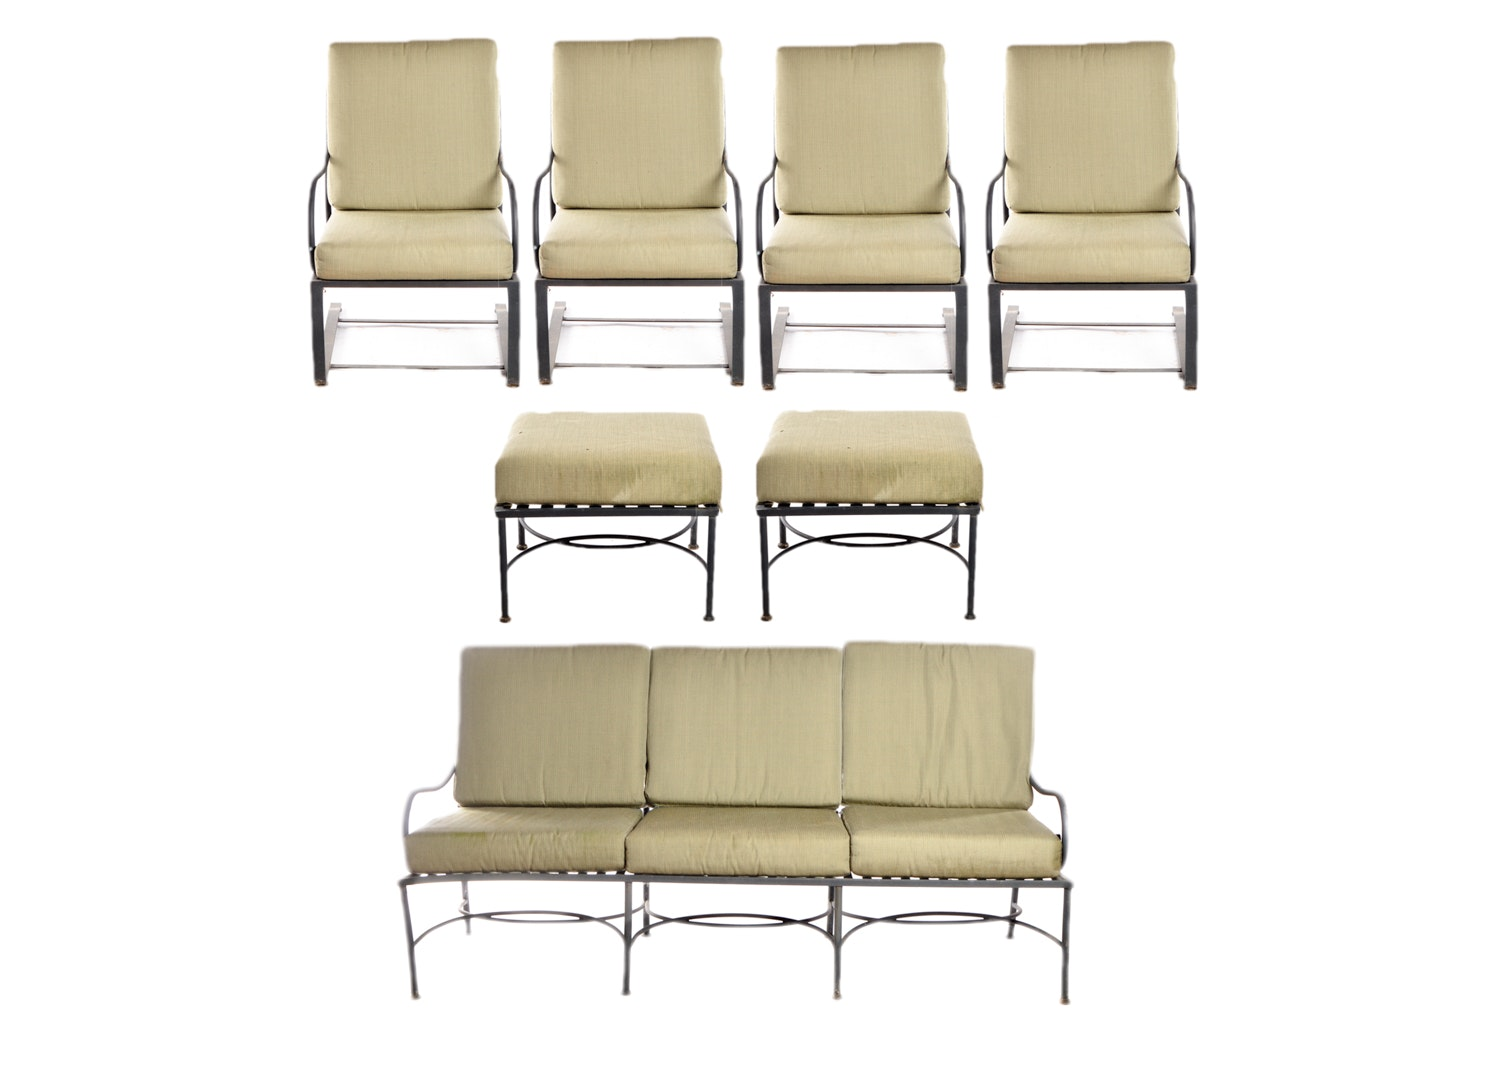 Metal Patio Furniture with Cushions